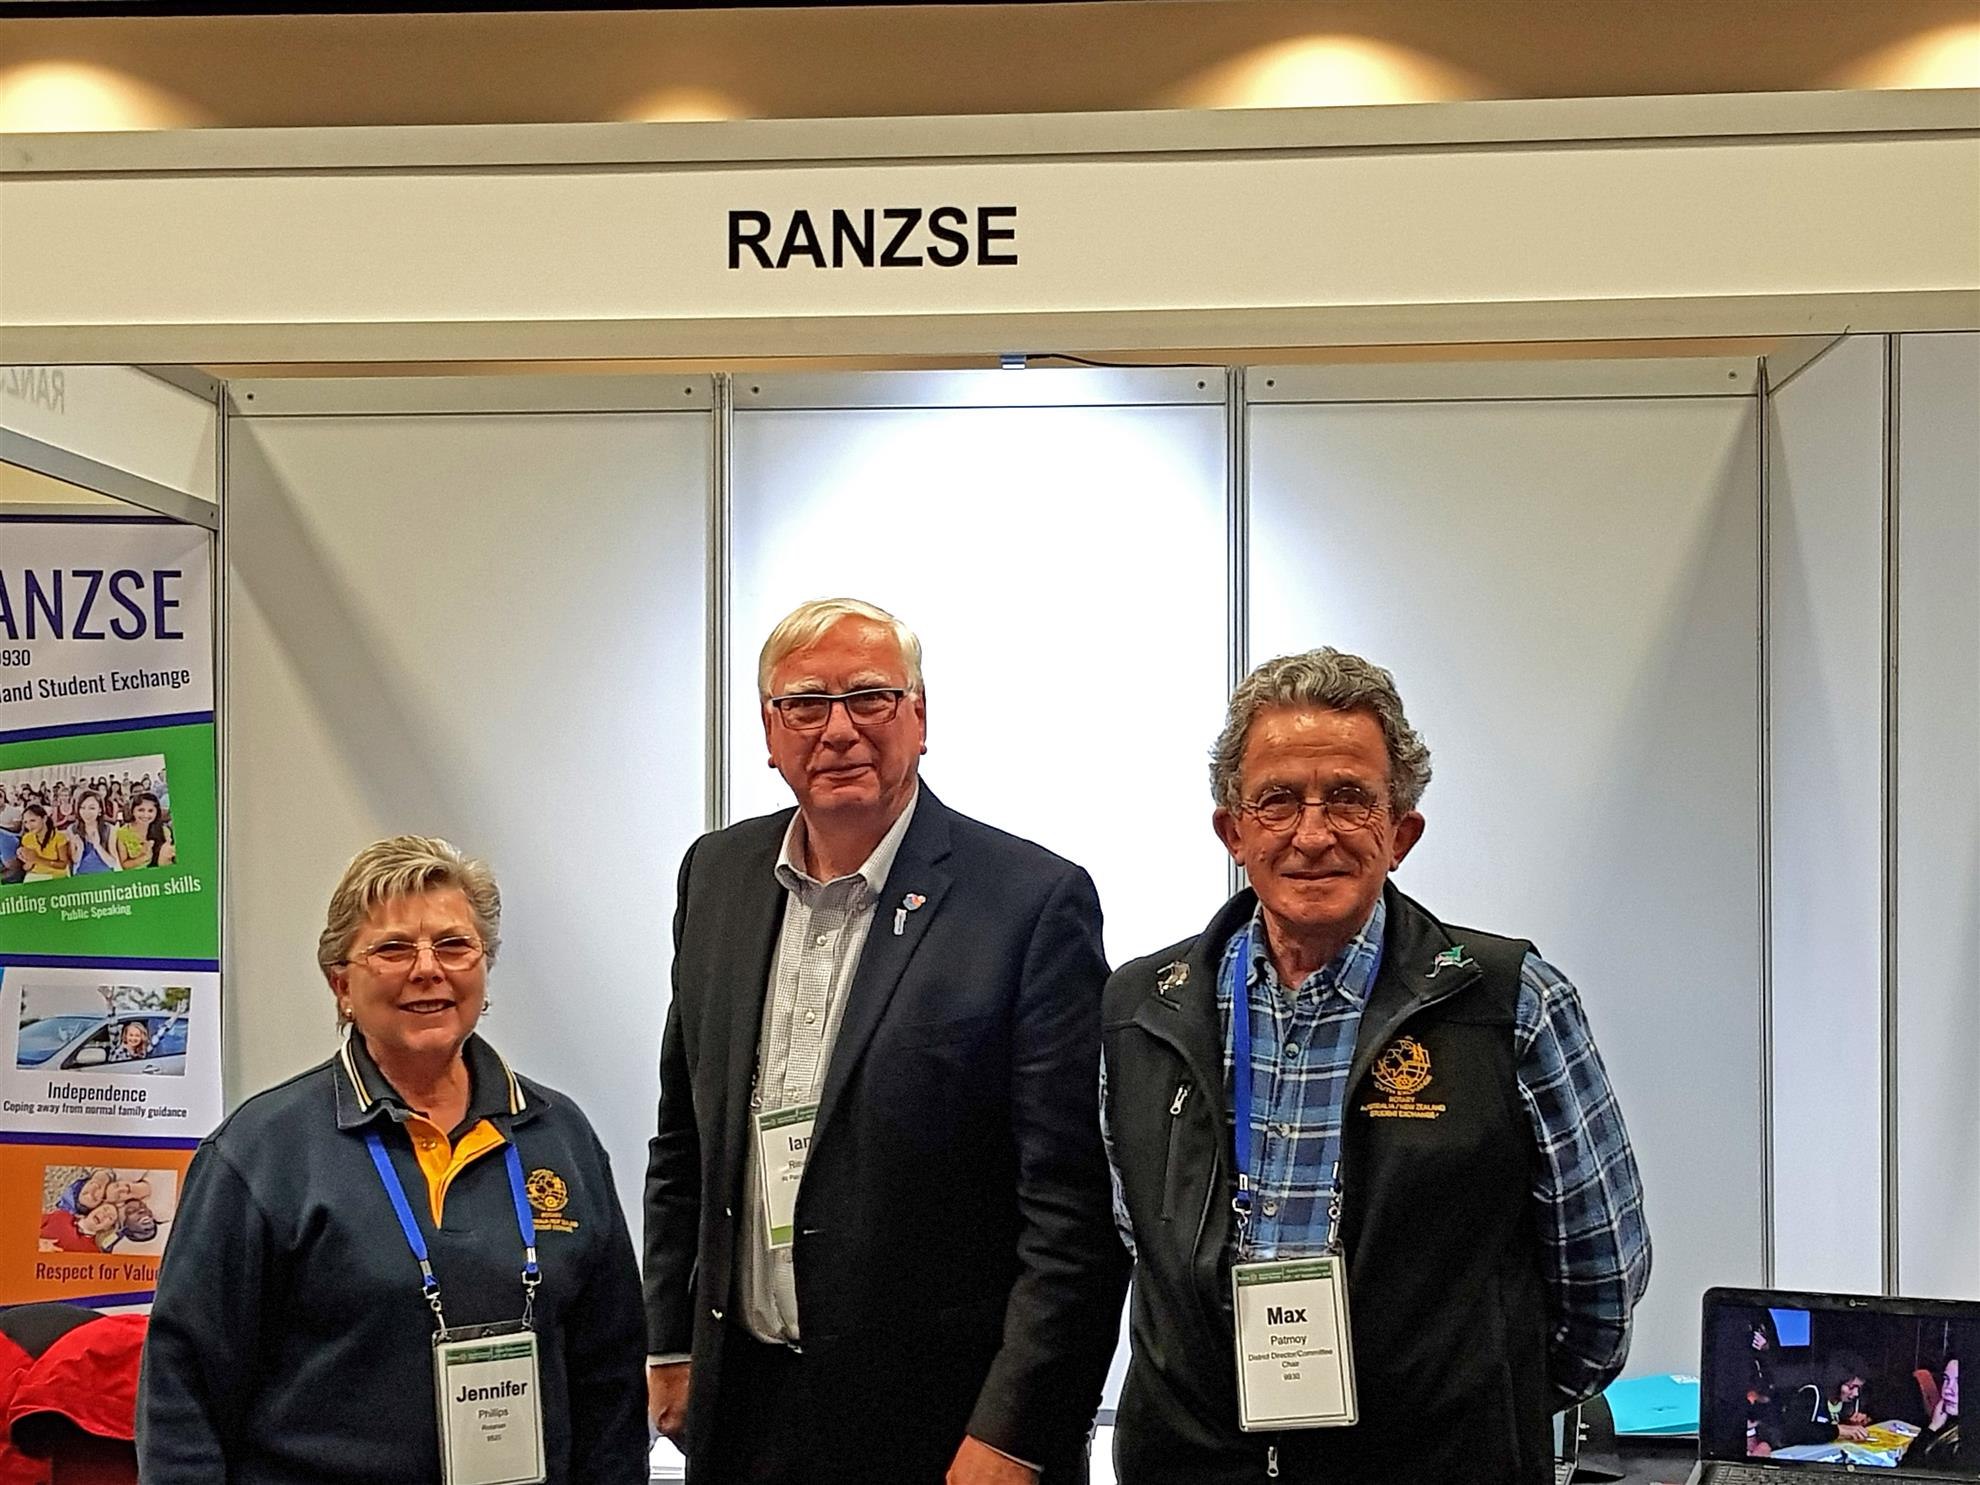 5066abf683 Whilst working in the Rotary Australia New Zealand Student Exchange booth  in Hobart